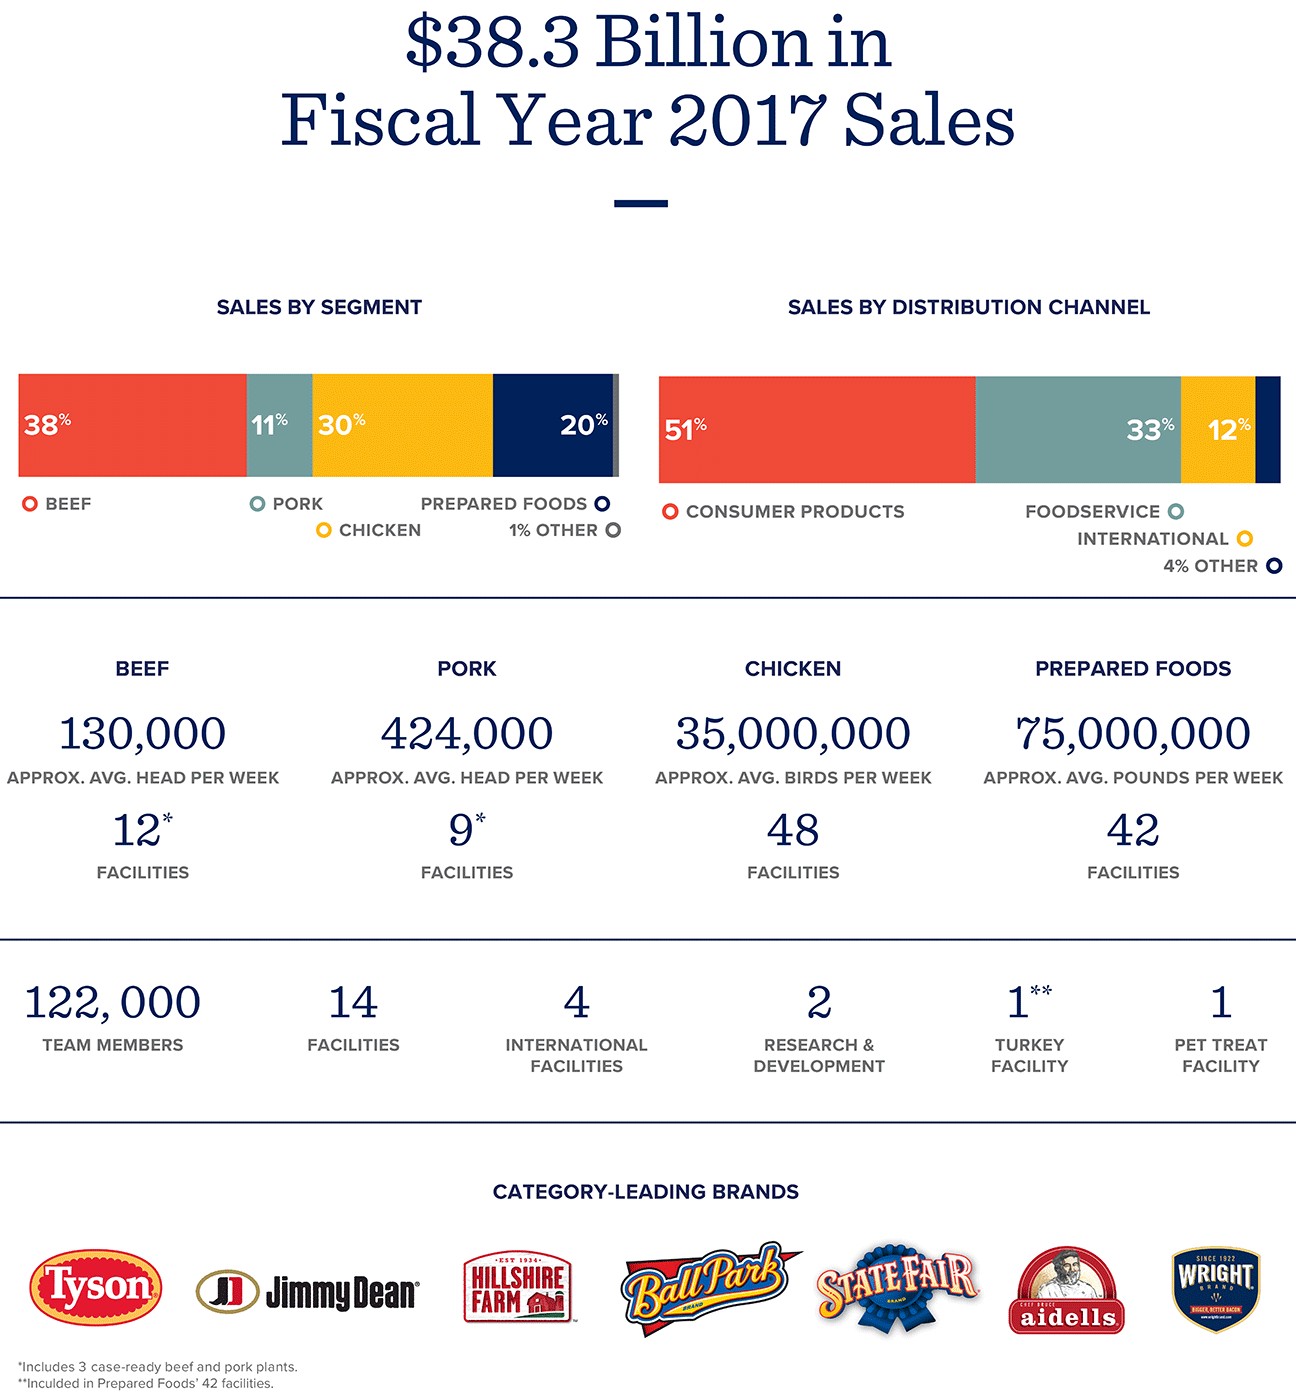 Fiscal Year 2017 Sales Fact Sheet